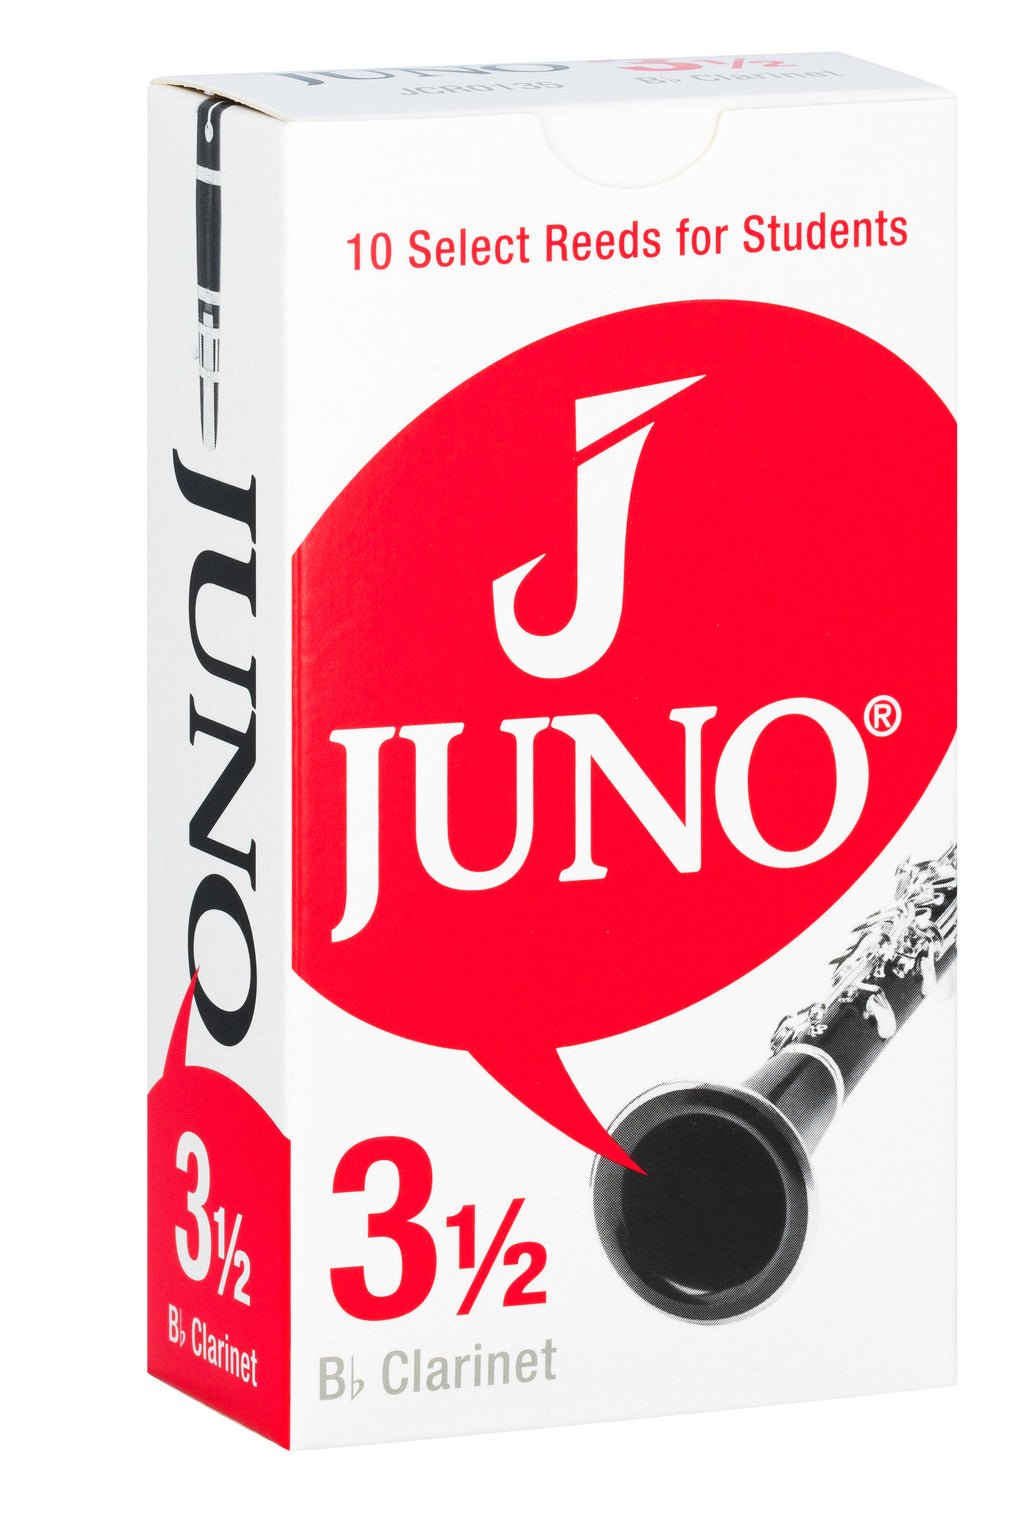 Vandoren Juno Reeds Bb Clarinet - Box of 10